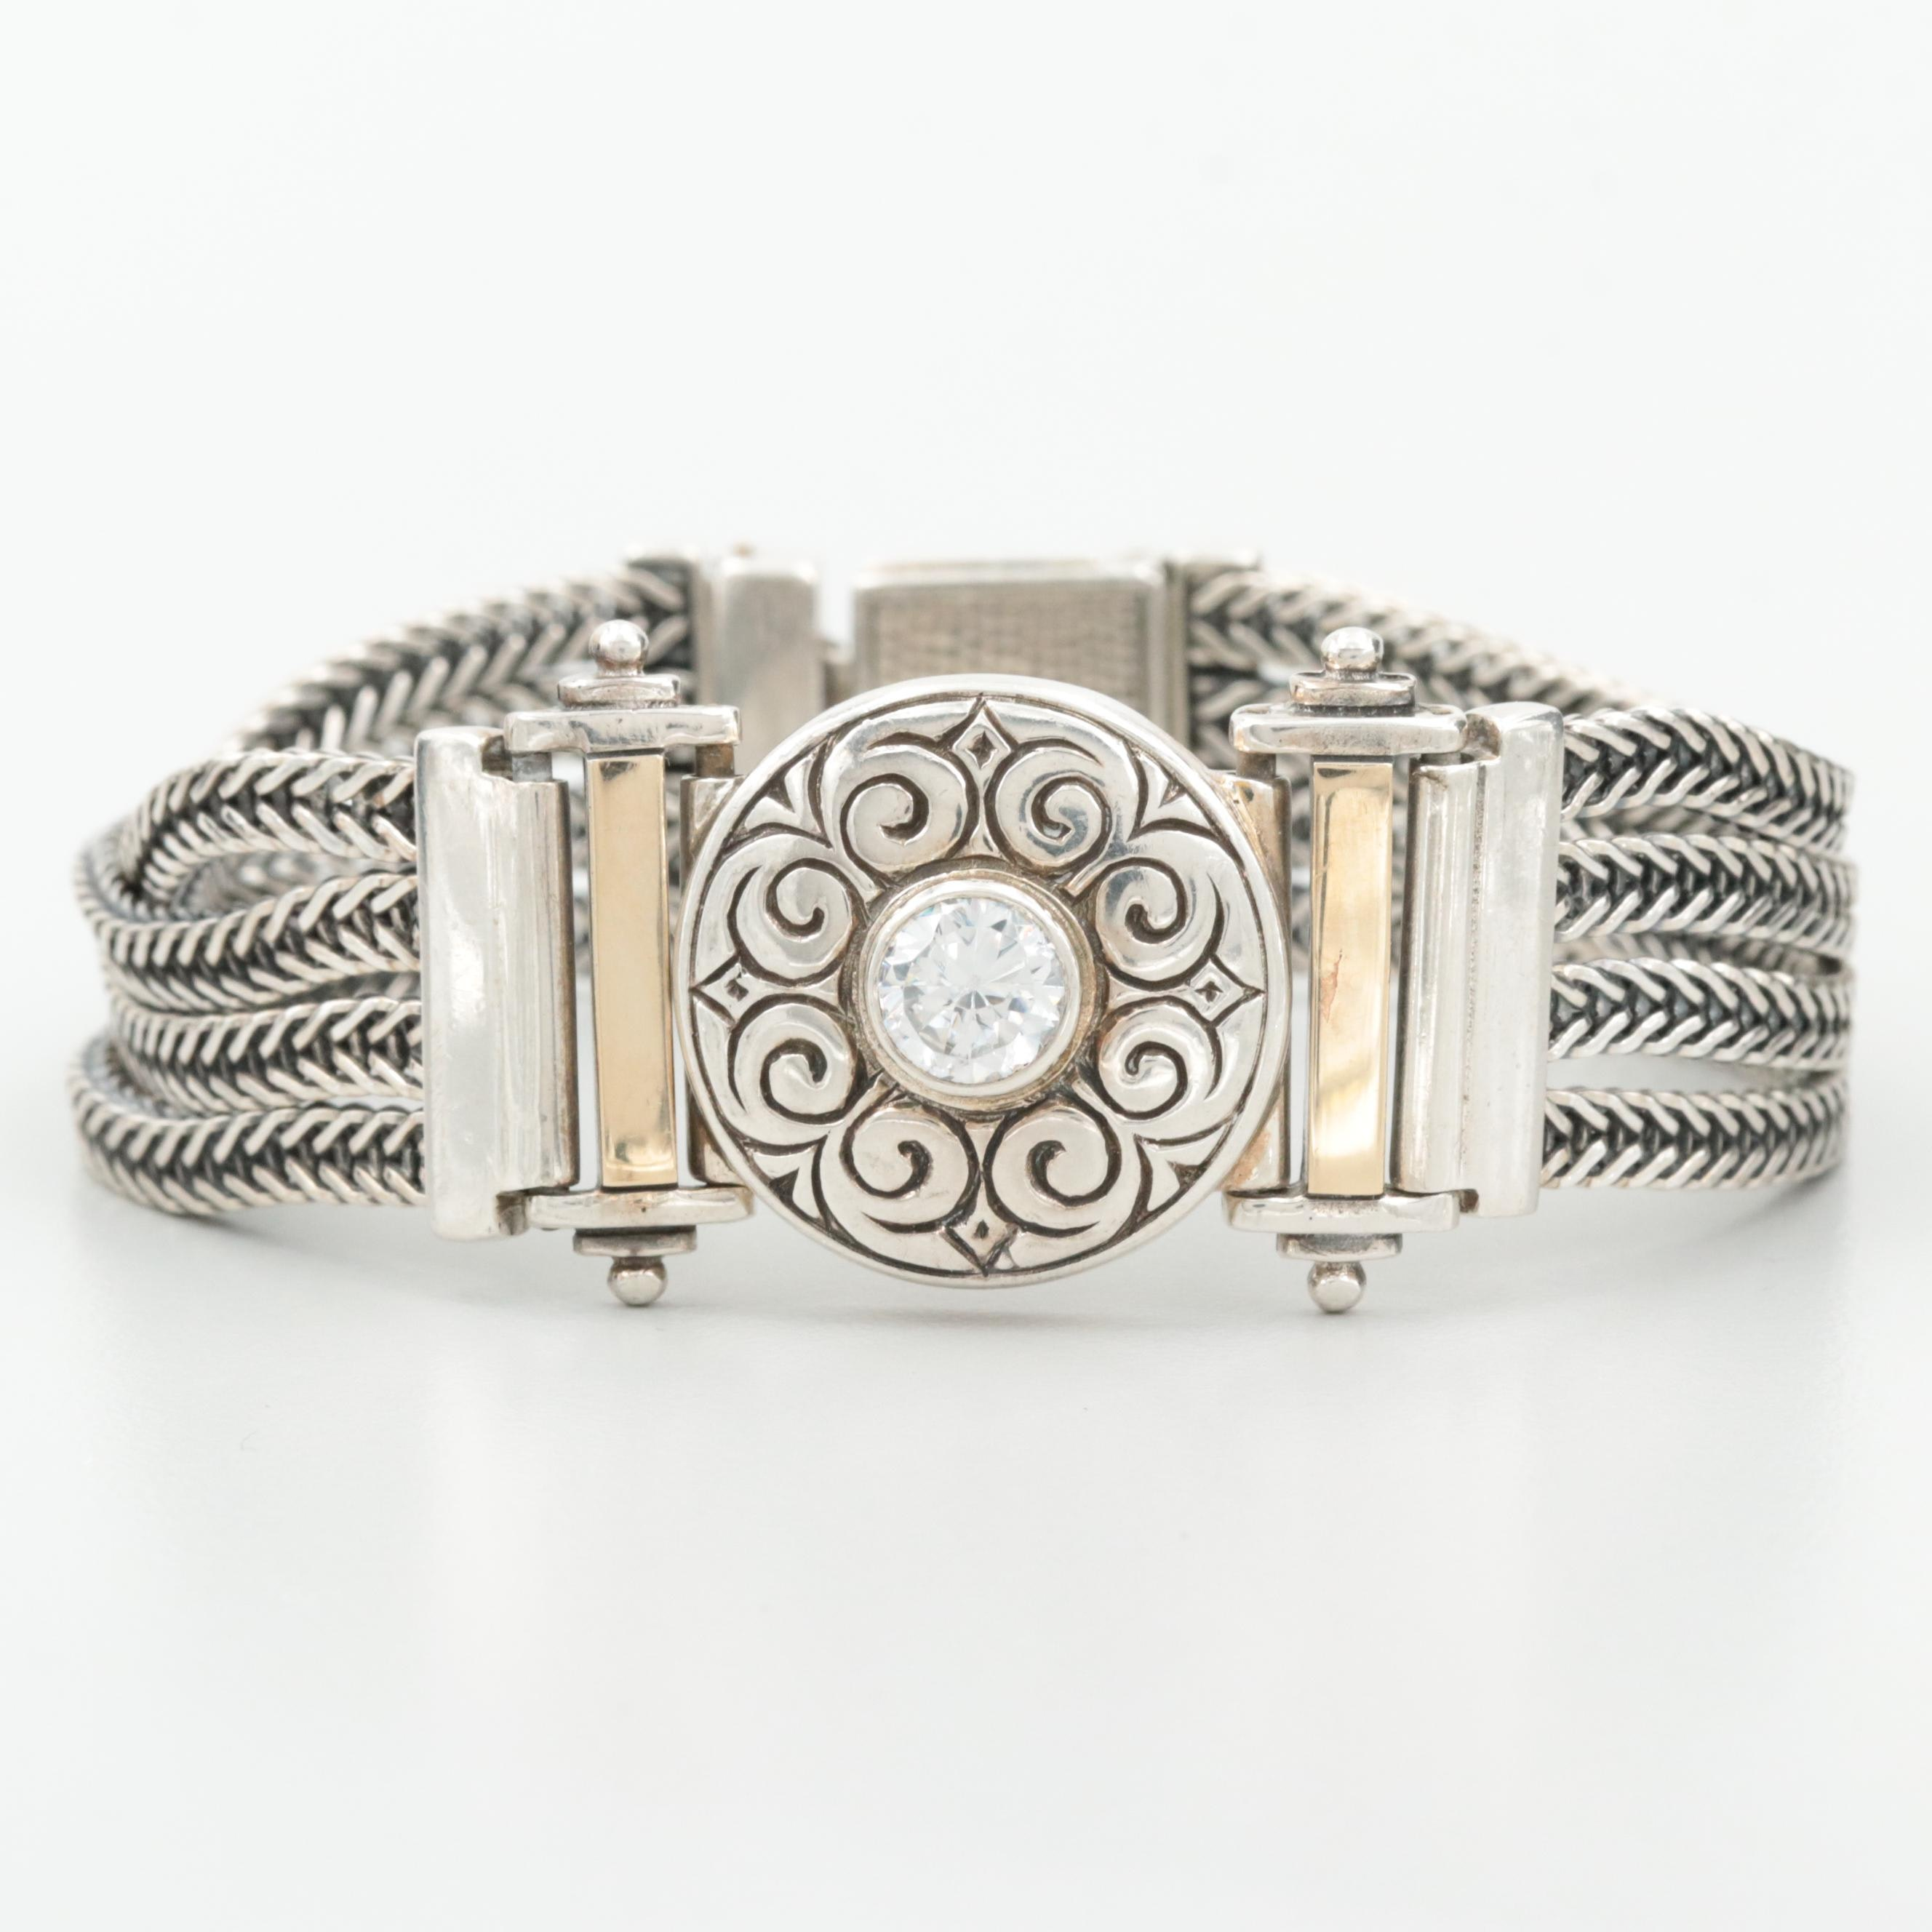 Sterling Silver Cubic Zirconia Bracelet with 14K Yellow Gold Accents